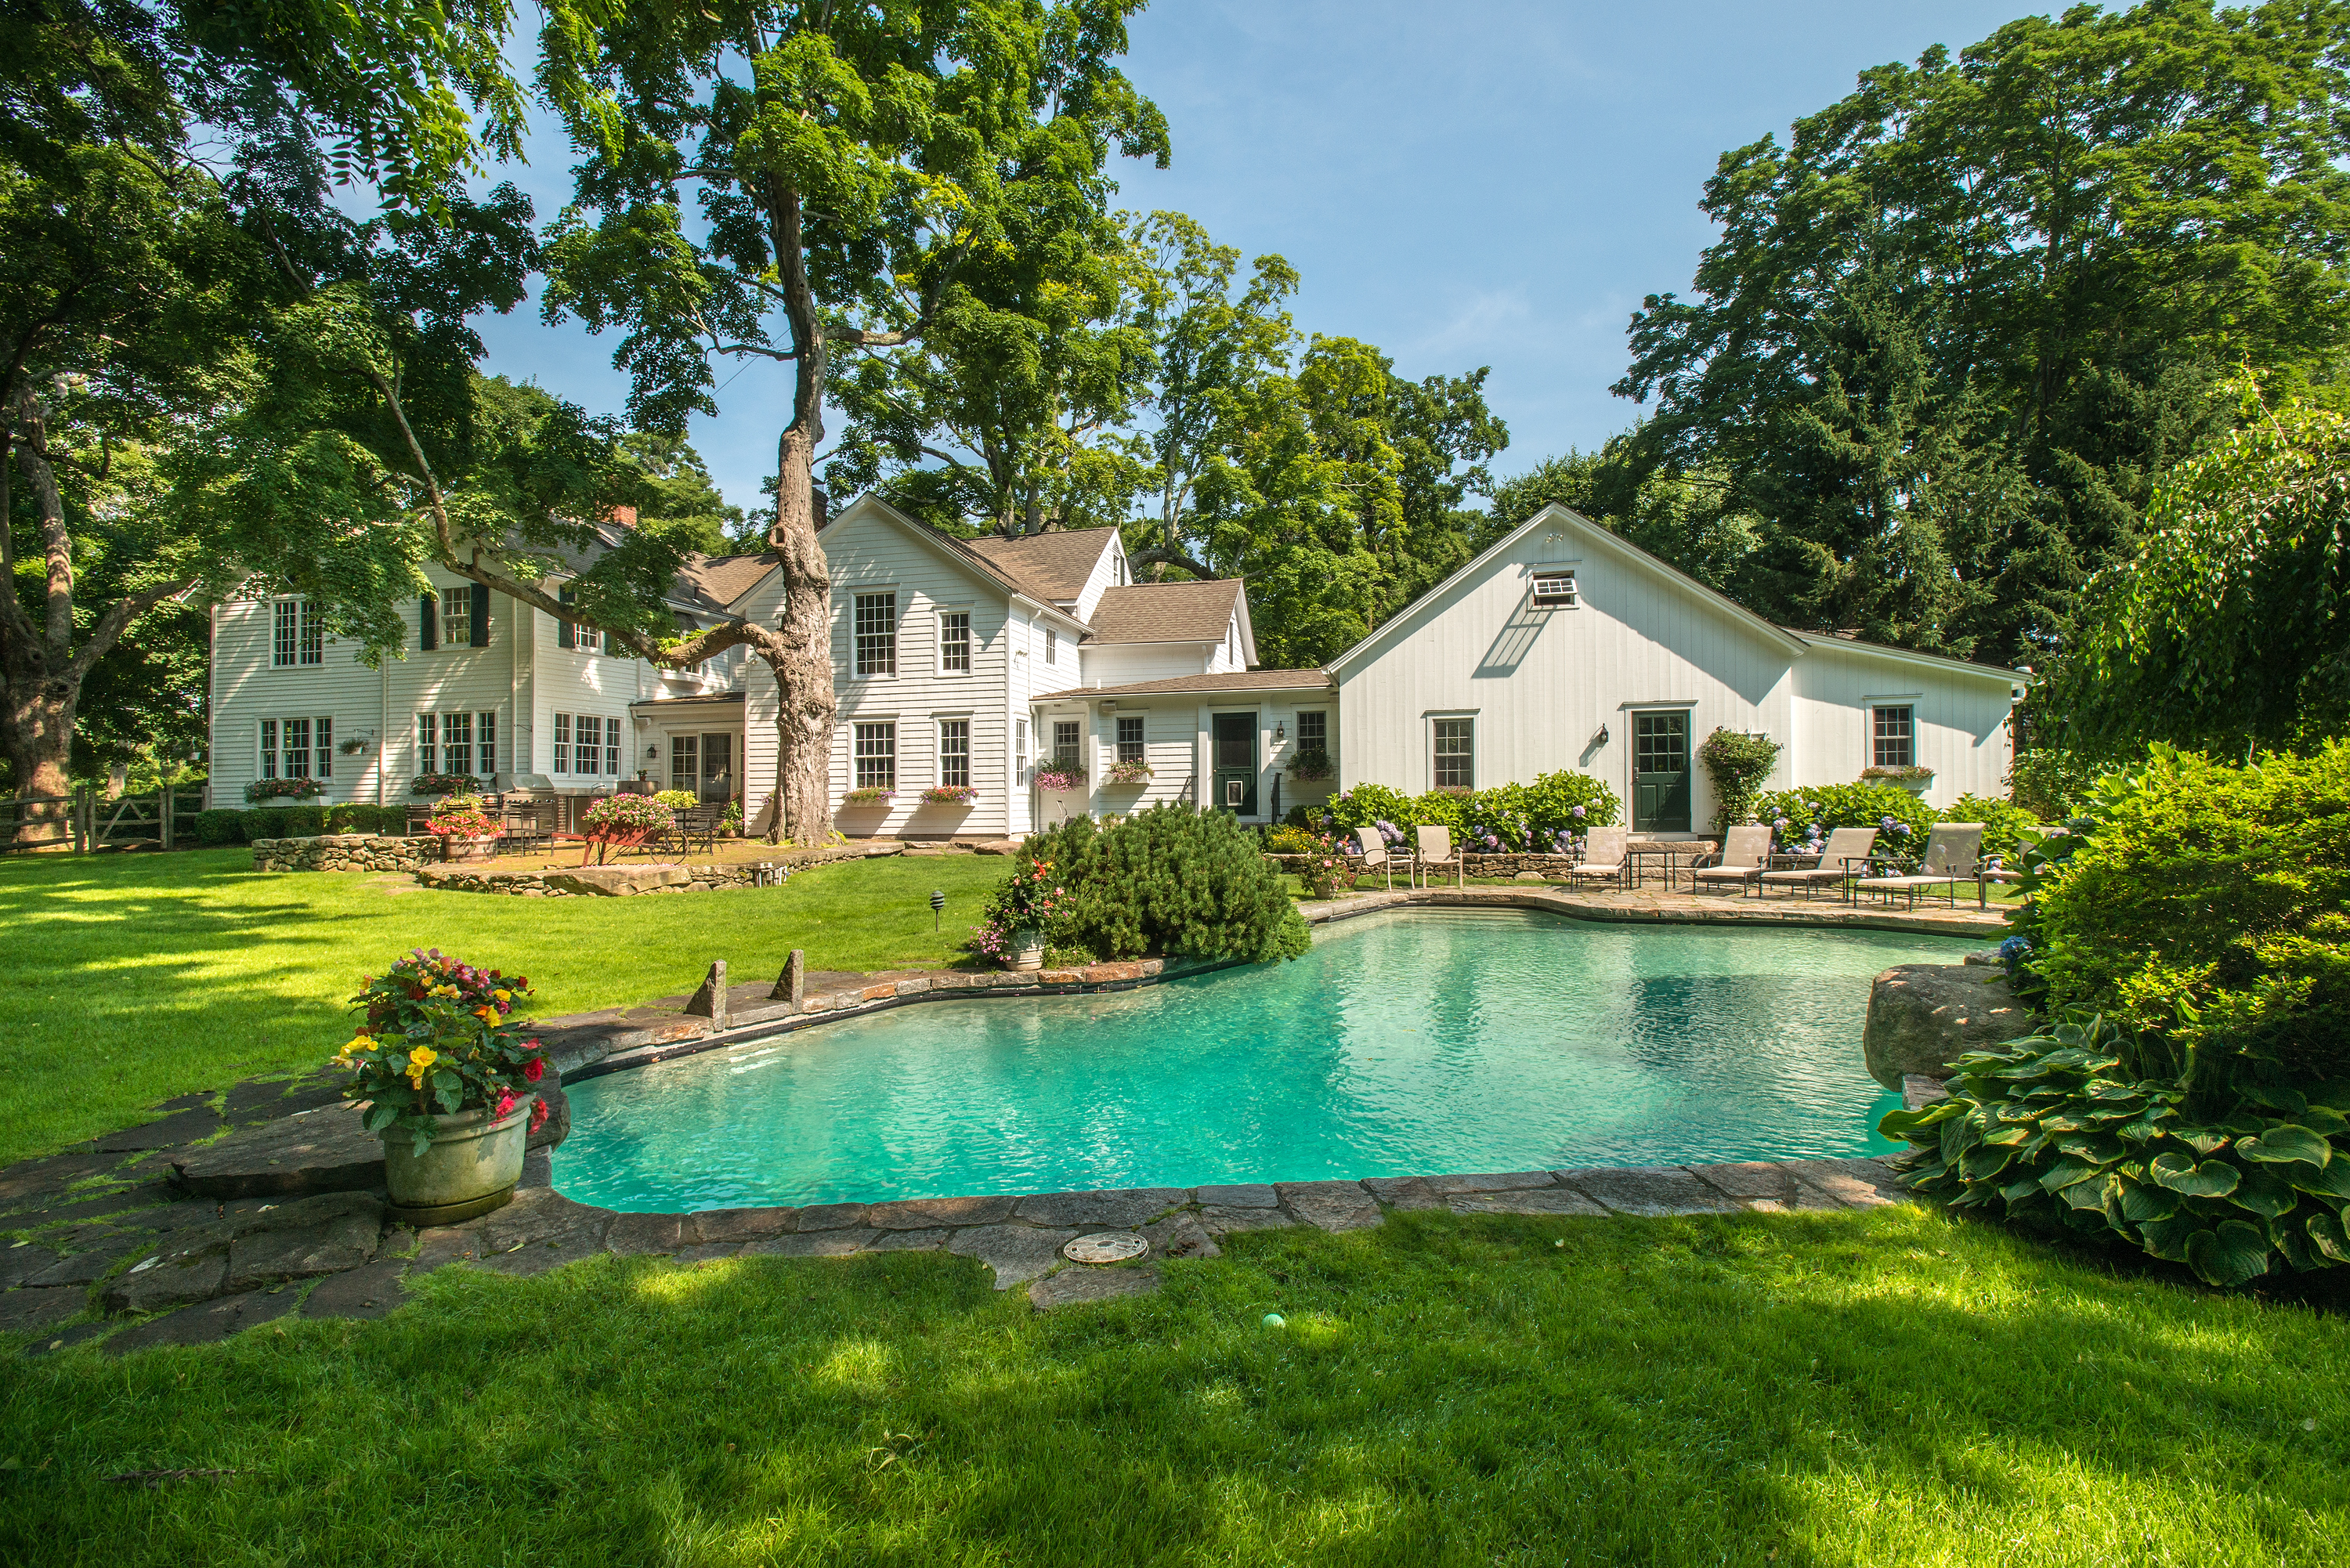 Property For Sale at Historic Renovated Farmhouse